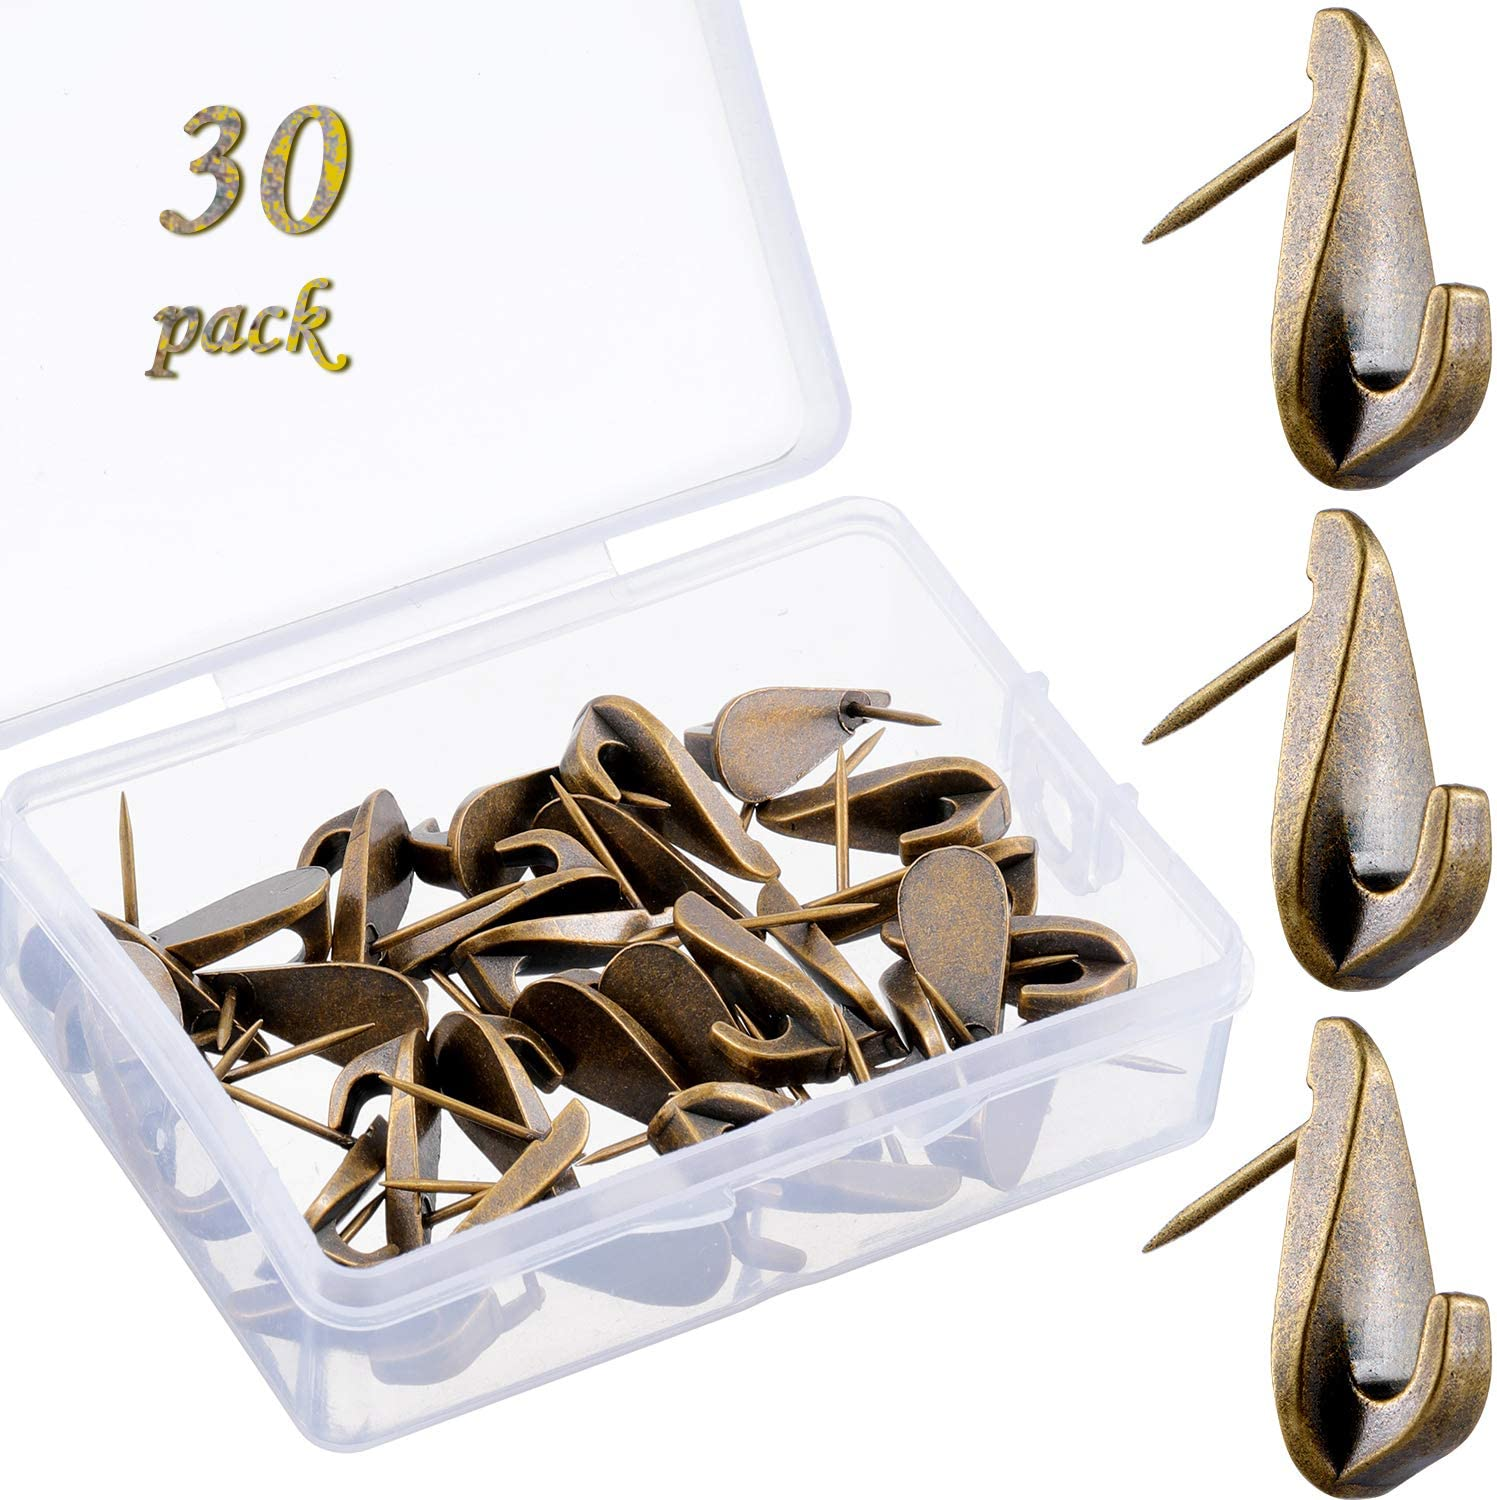 30 Pieces Pin Hooks Push Pin Hangers 20 lbs Teardrop Style Picture Hanging Nails for Home Office Wooden Fabric Wall (Bronze)